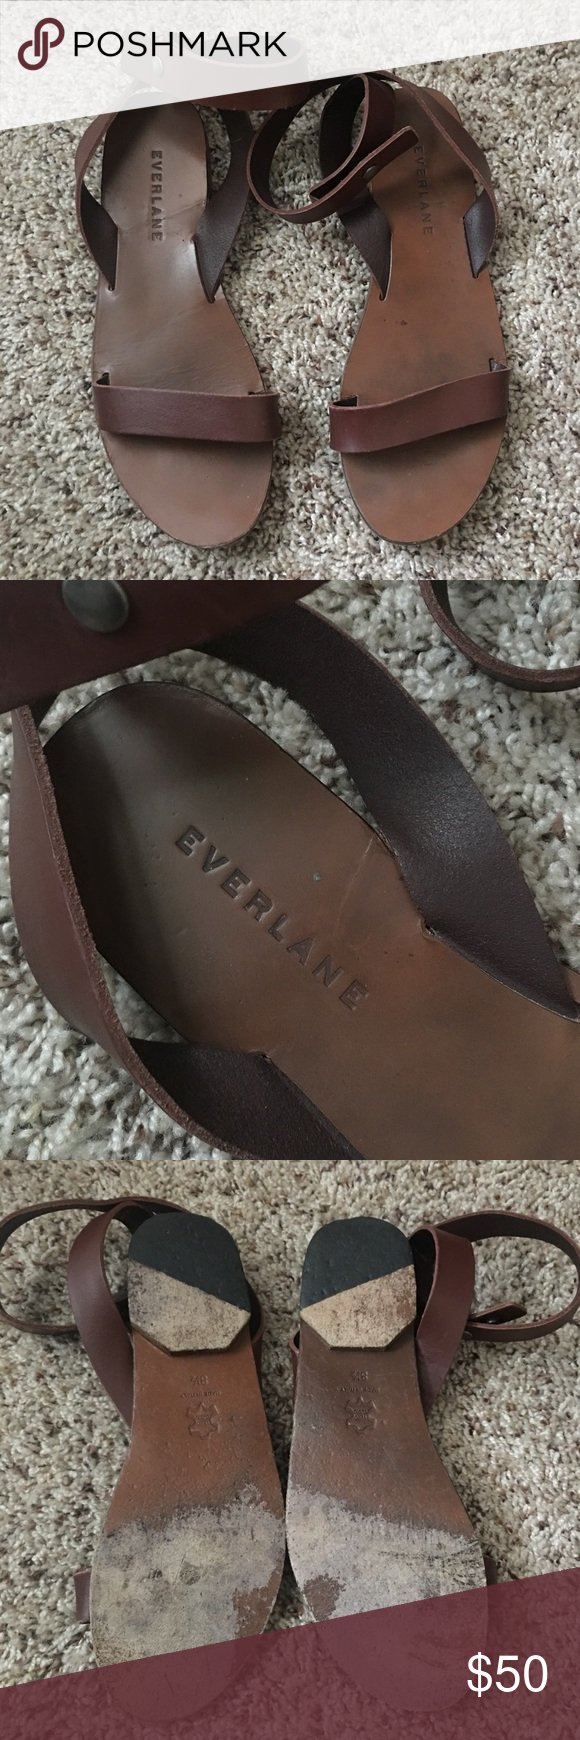 GUC Everlane Italian Ankle-Wrap Sandals-8.5/Fig Lovely and delicate Italian Ankle-Wrap leather sandals by Everlane. Normal wear, and lots of life left in them! Very comfortable shoes. Fit is TTS or possibly 1/2-size large (8.5 fits 8.5-9). Fig color is like a warm brown-burgundy - very versatile color. No longer available from seller. On the fence about selling; price is pretty firm. Everlane Shoes Sandals